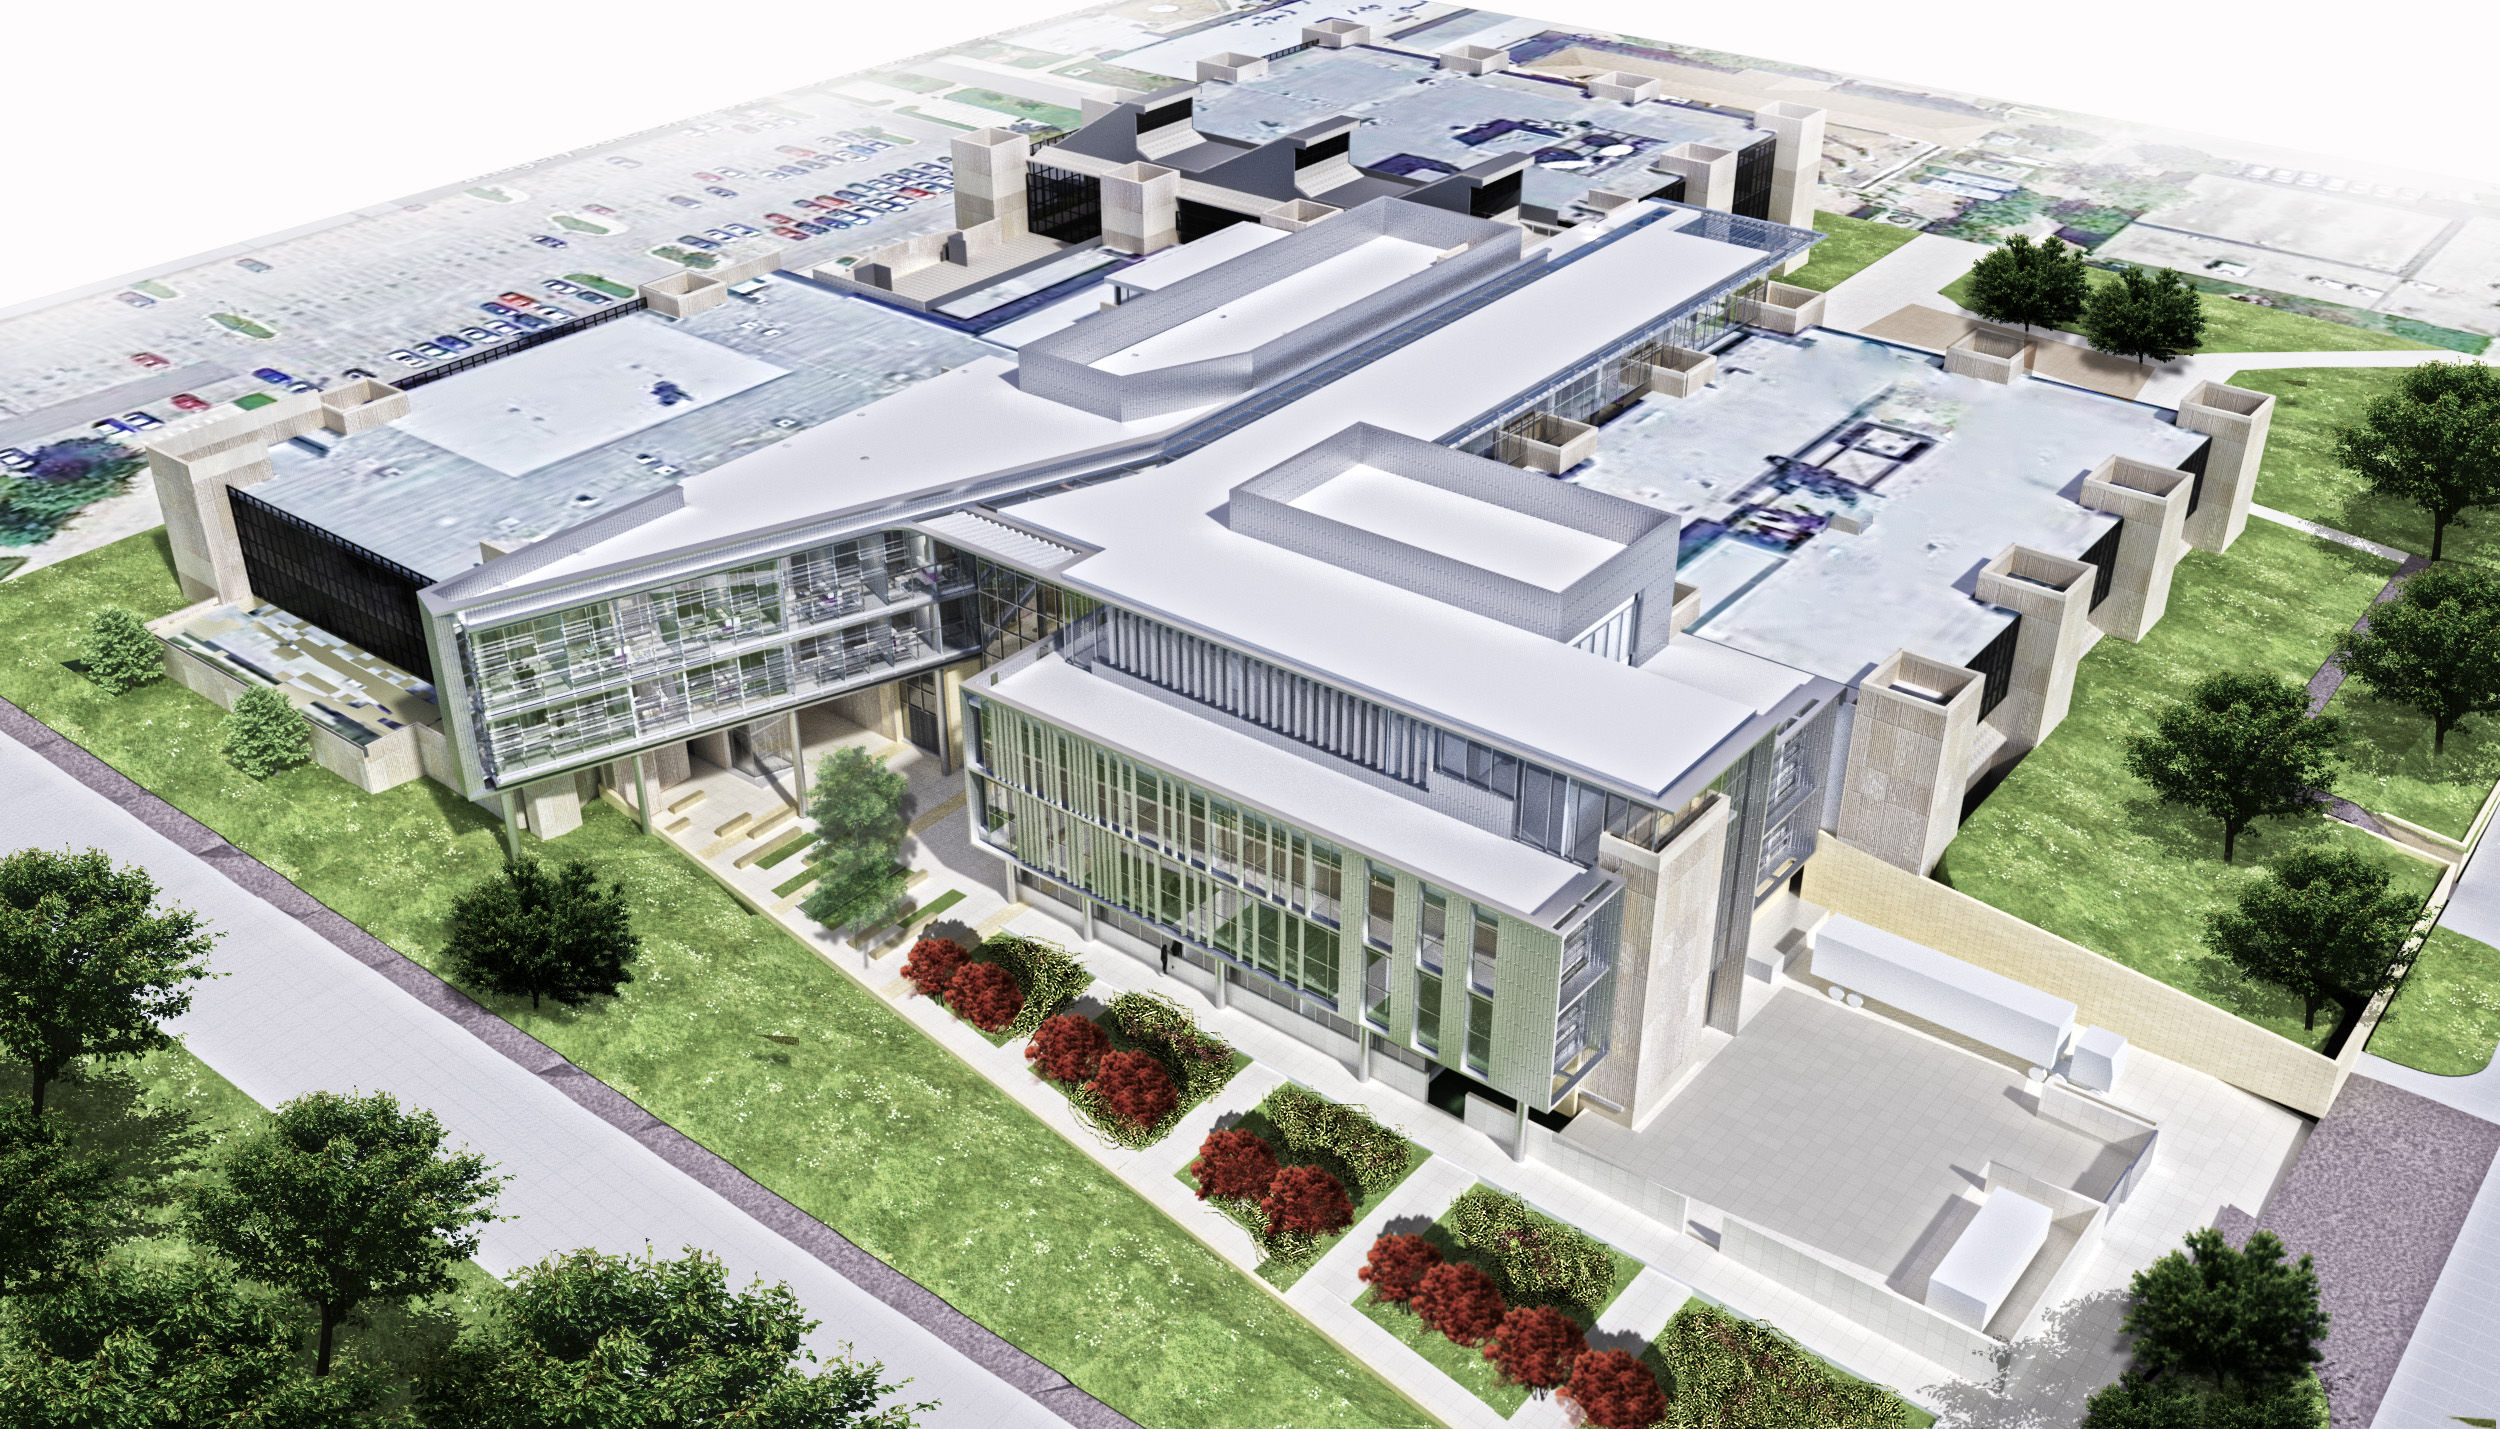 K State Architecture: College Of Engineering Will Expand, Construct New 107,000